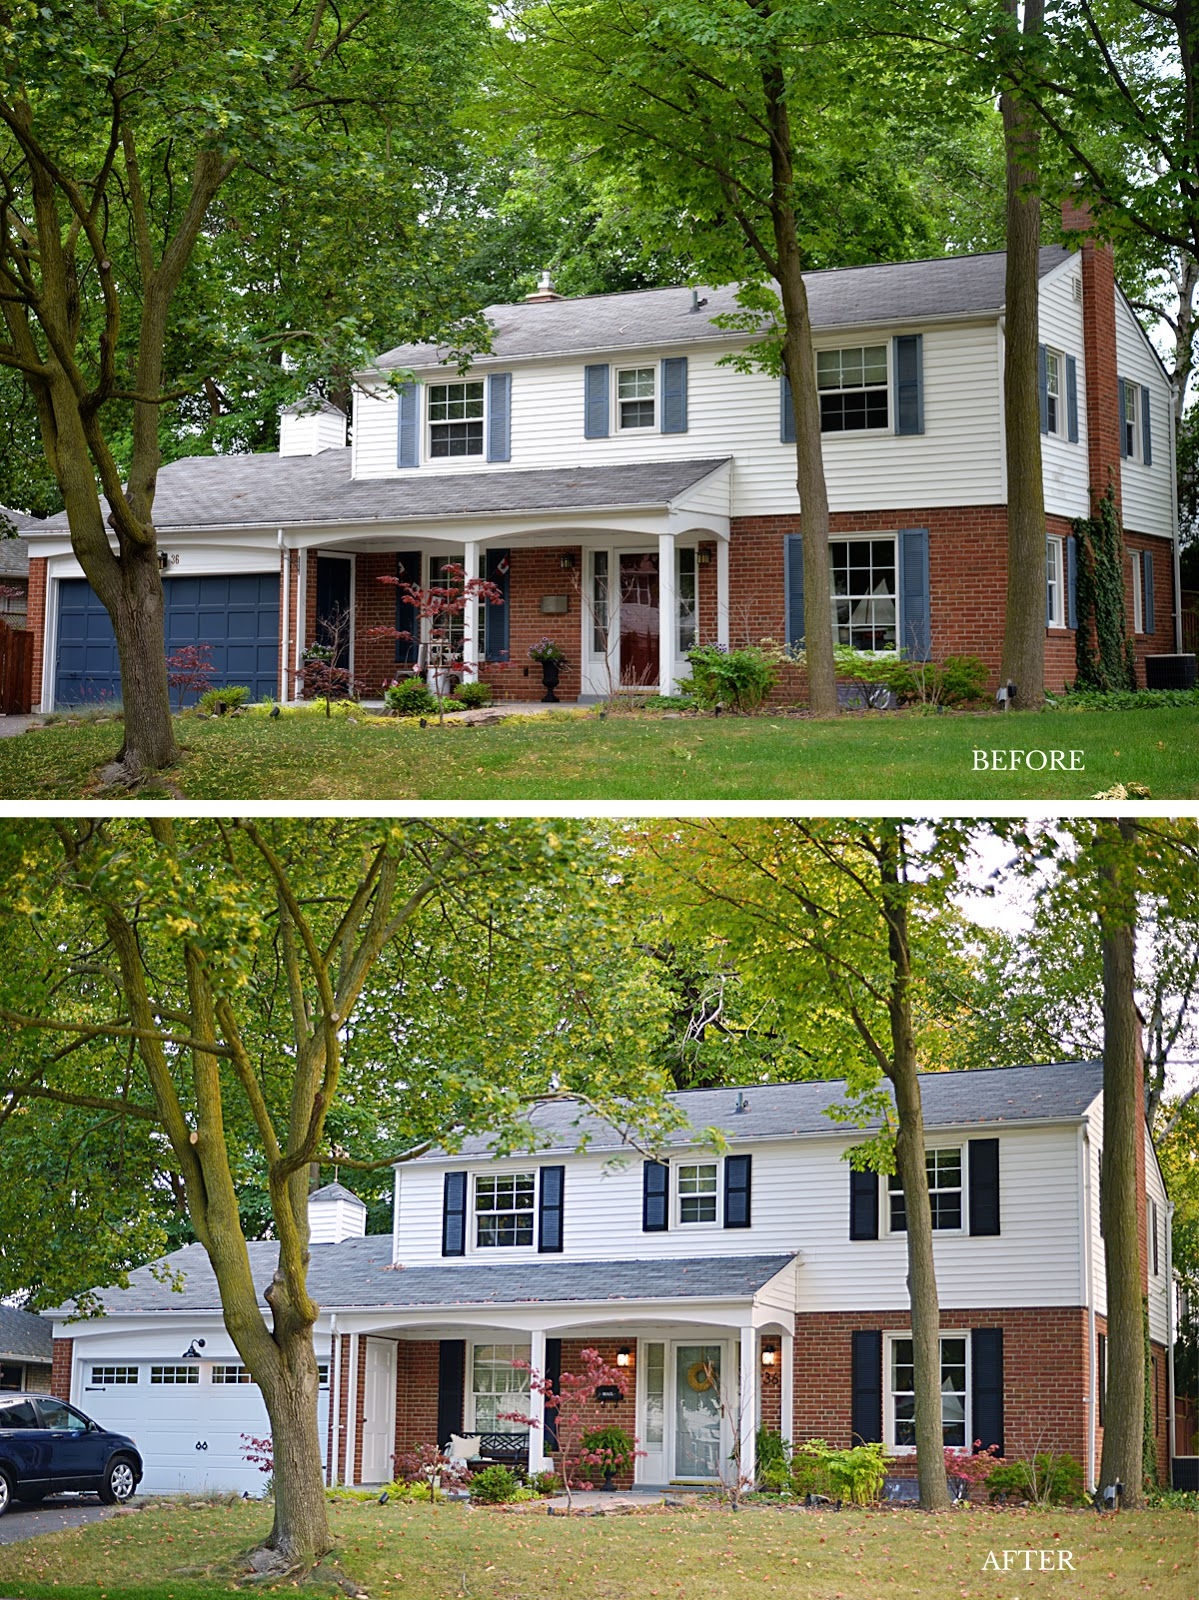 before and after exterior refresh of a colonial style house, front porch decorating ideas for summer